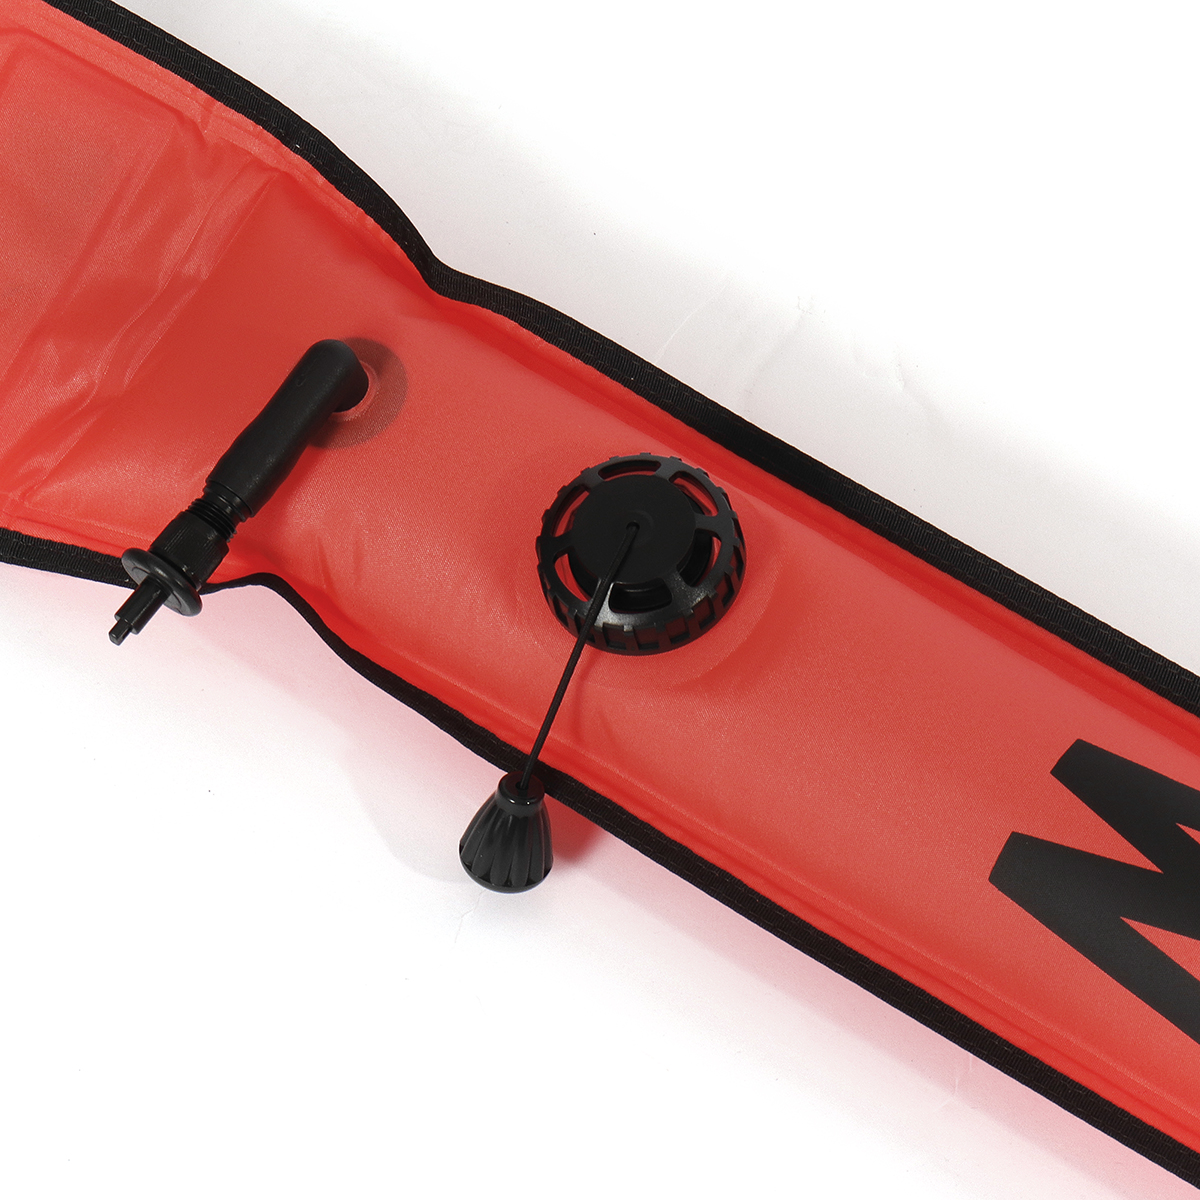 1.5M High Visibility Scuba Diving Reel SMB Surface Marker Buoy and Dive Wreck Reel Safety Gear